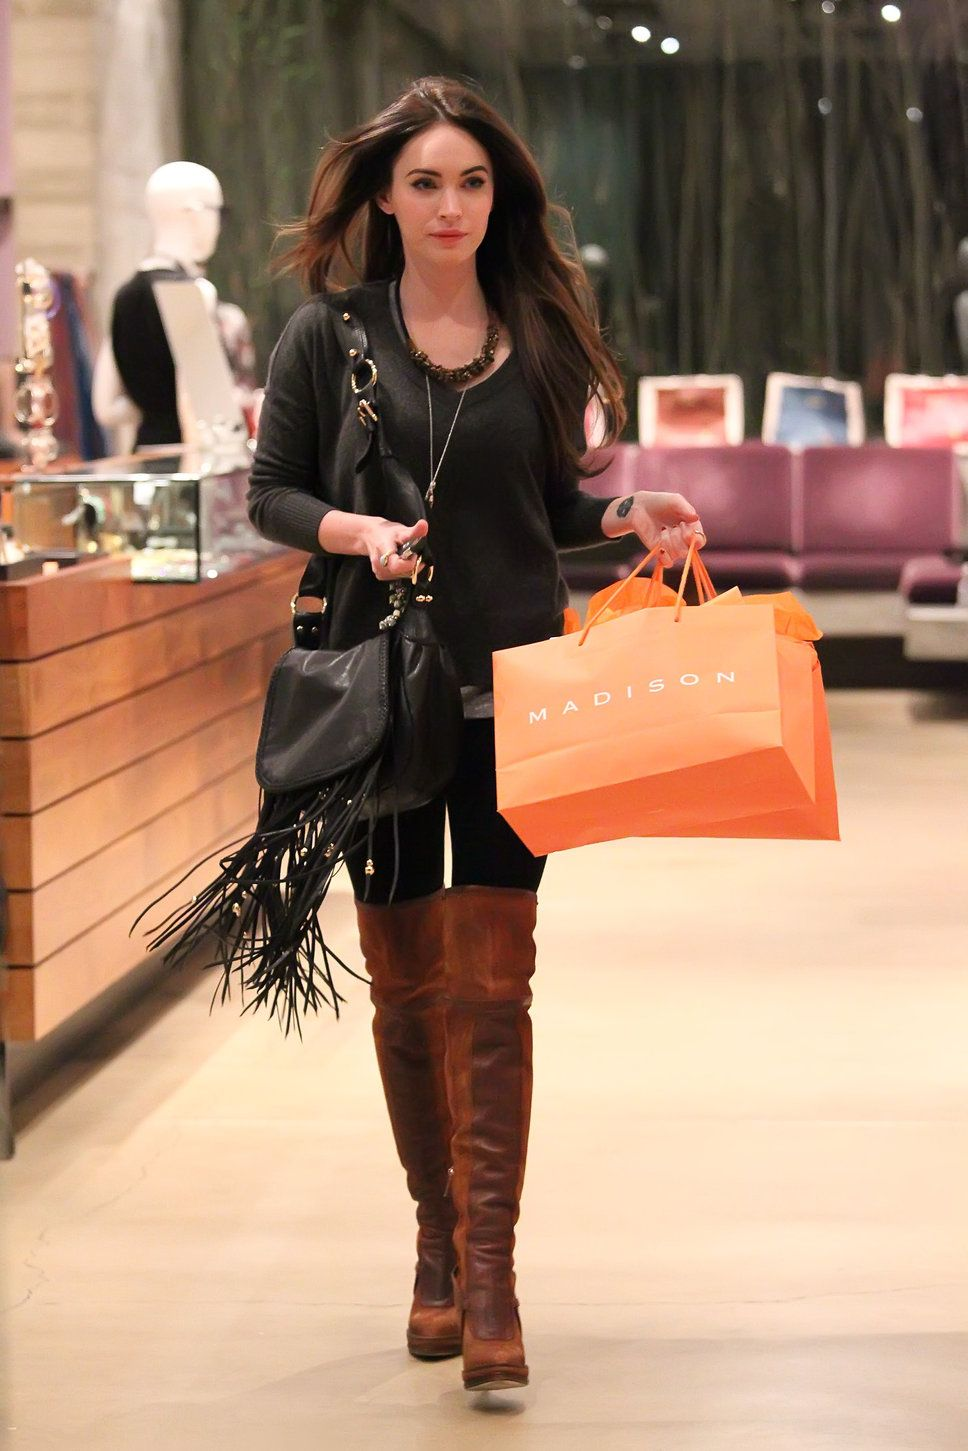 Megan Fox shopping black dress brown knee high boots black fringe bag